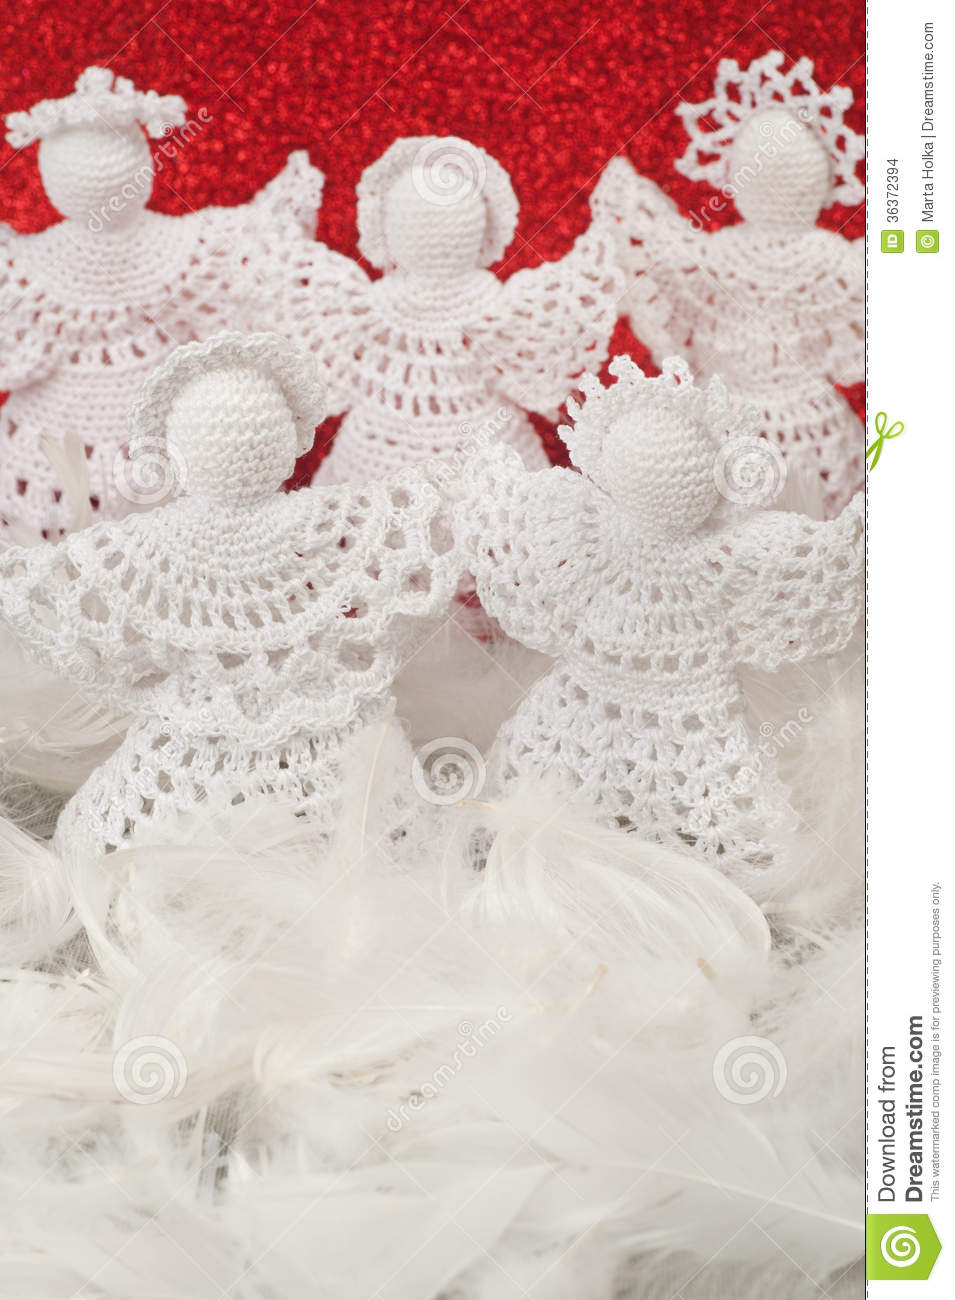 Christmas Crochet Angels Stock Images - Image: 36372394